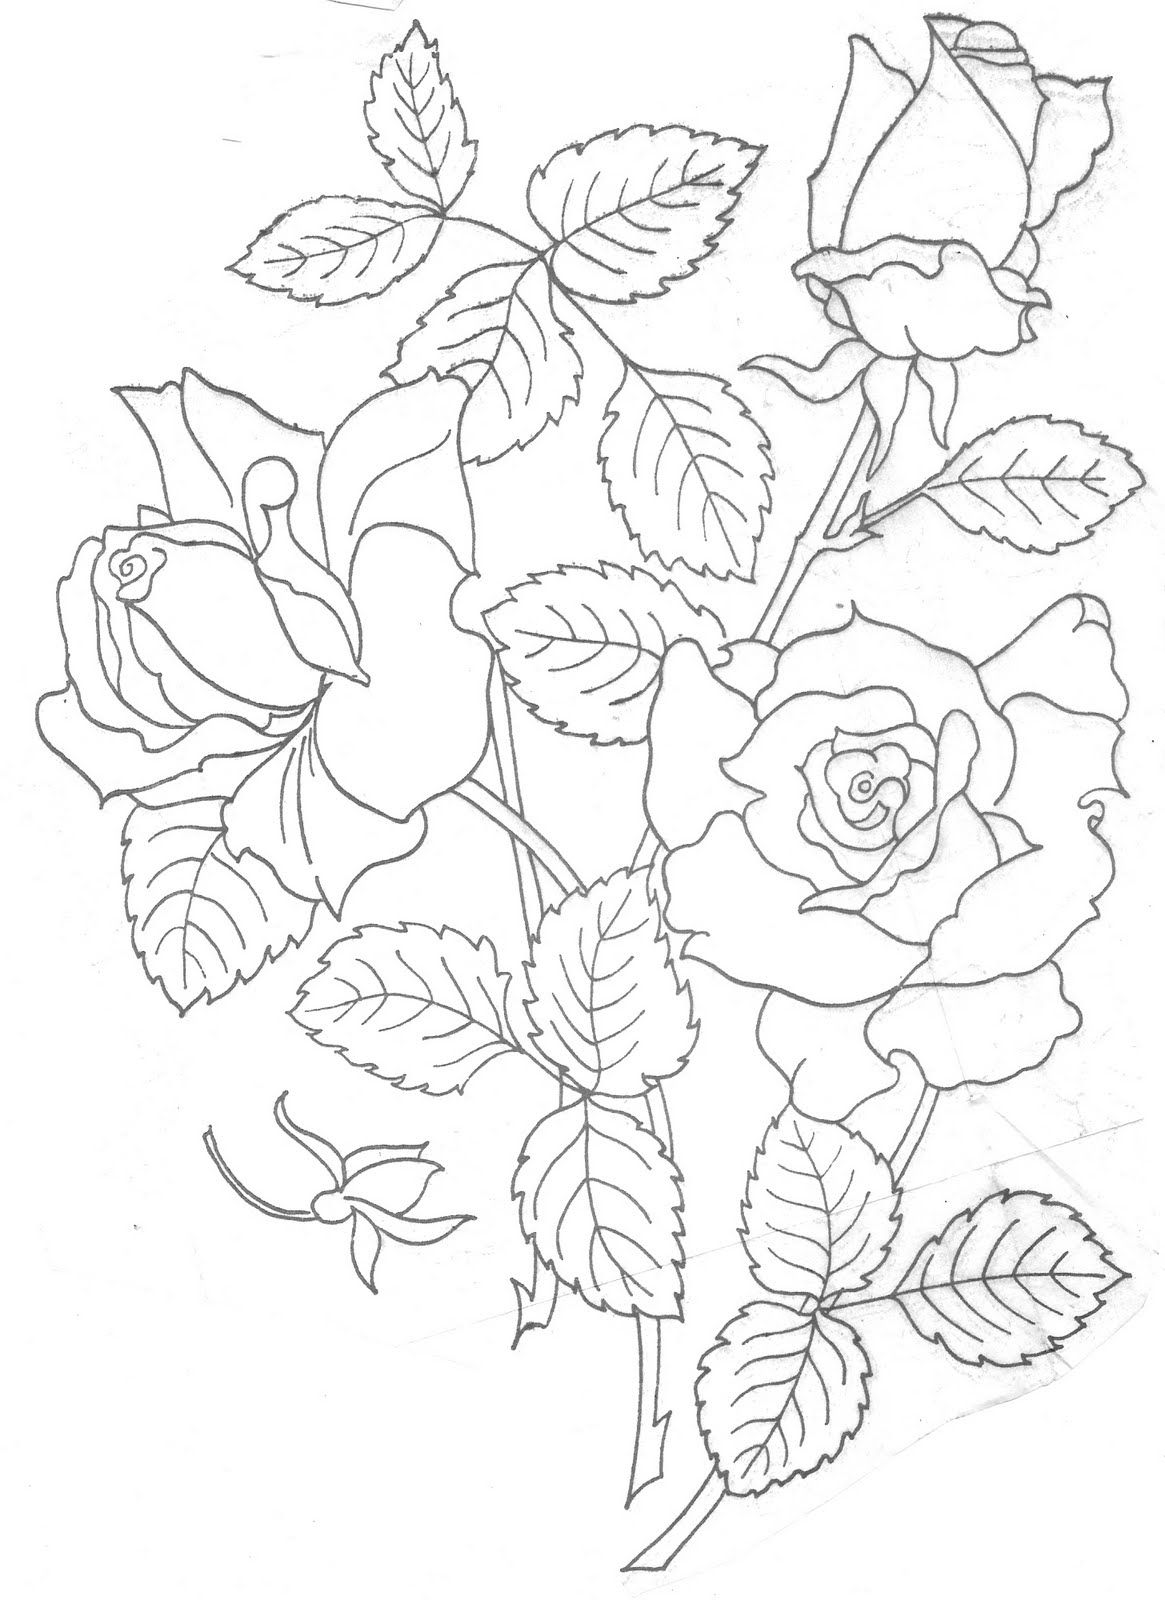 Free Hand Embroidery Flowers Patterns Embroidery Pillowcase Pattern Embroidery D Hand Embroidery Patterns Free Embroidery Patterns Vintage Paper Embroidery